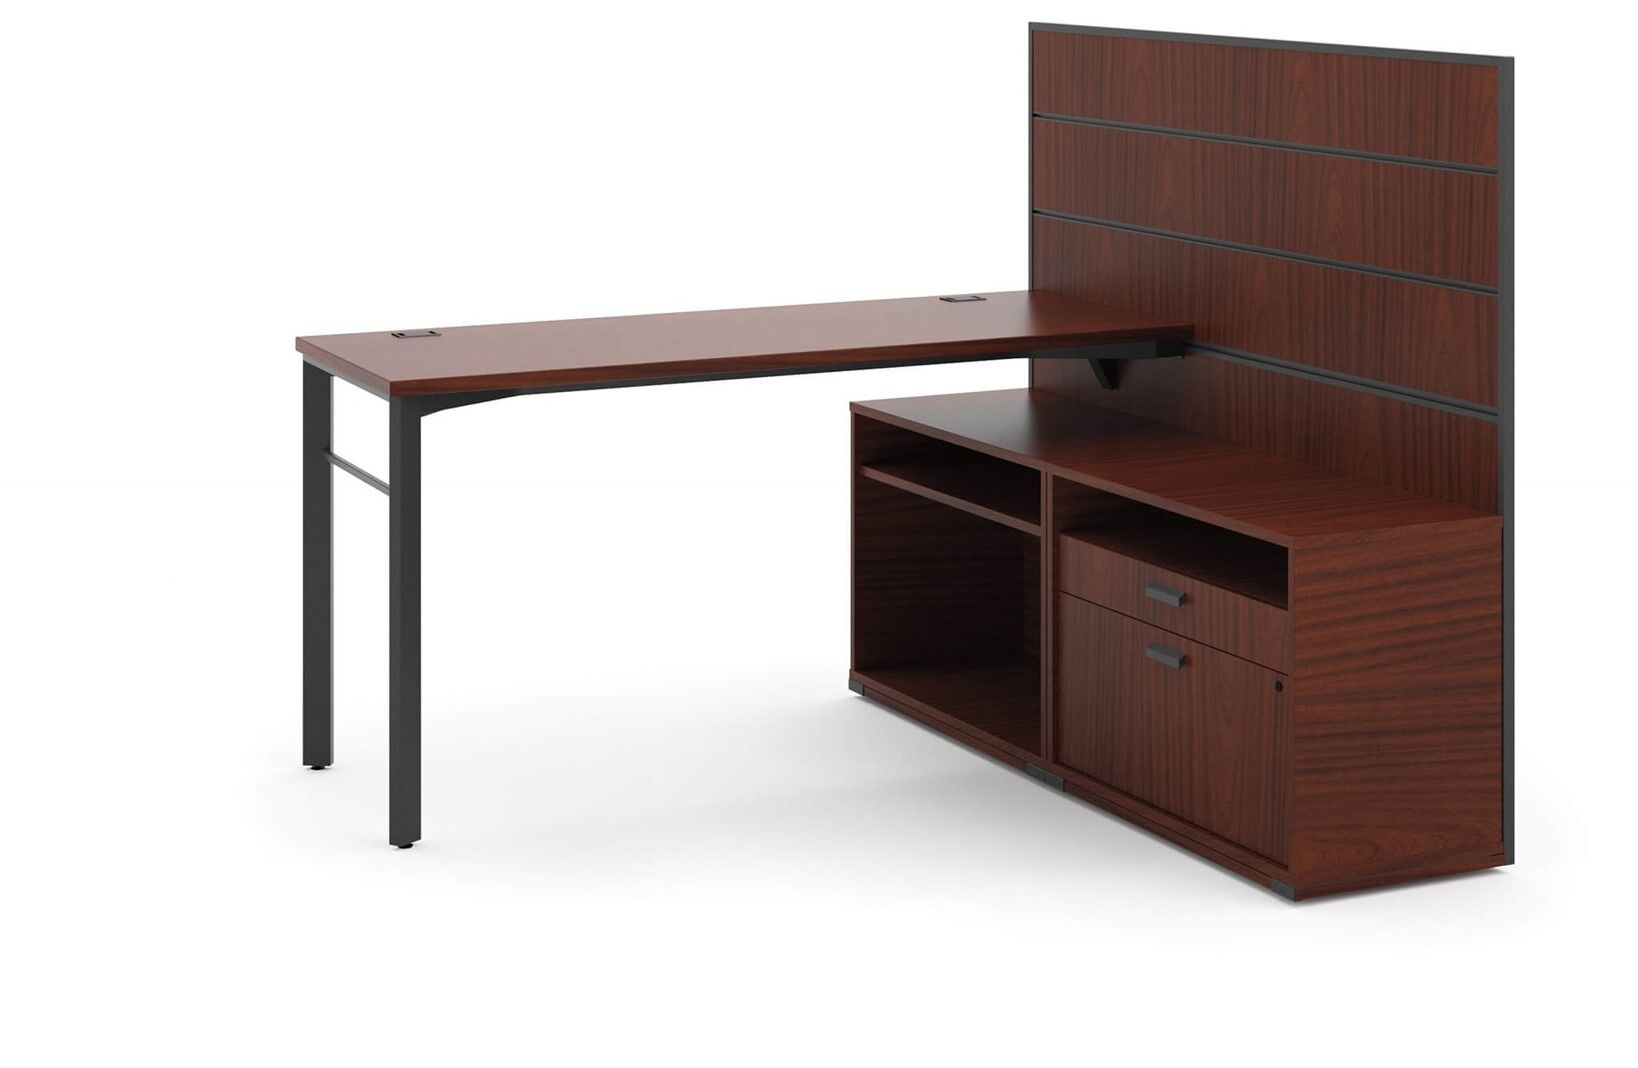 Large l shaped desk CUB HMLDFW61602C NOH_preview